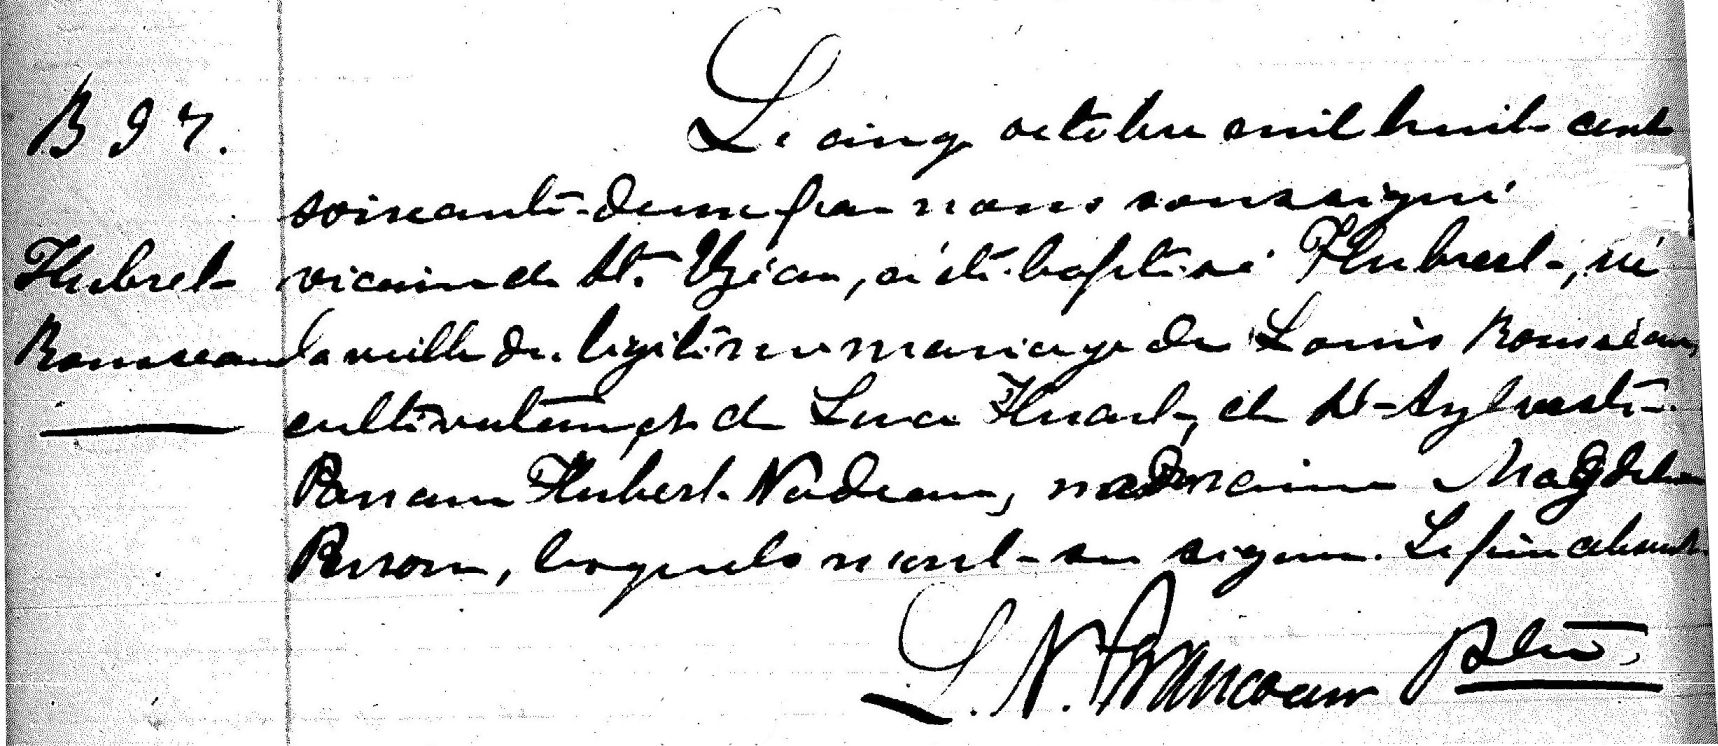 Records for Paroisse St. Elezar showing Baptism Entry for Hubert Rousseau